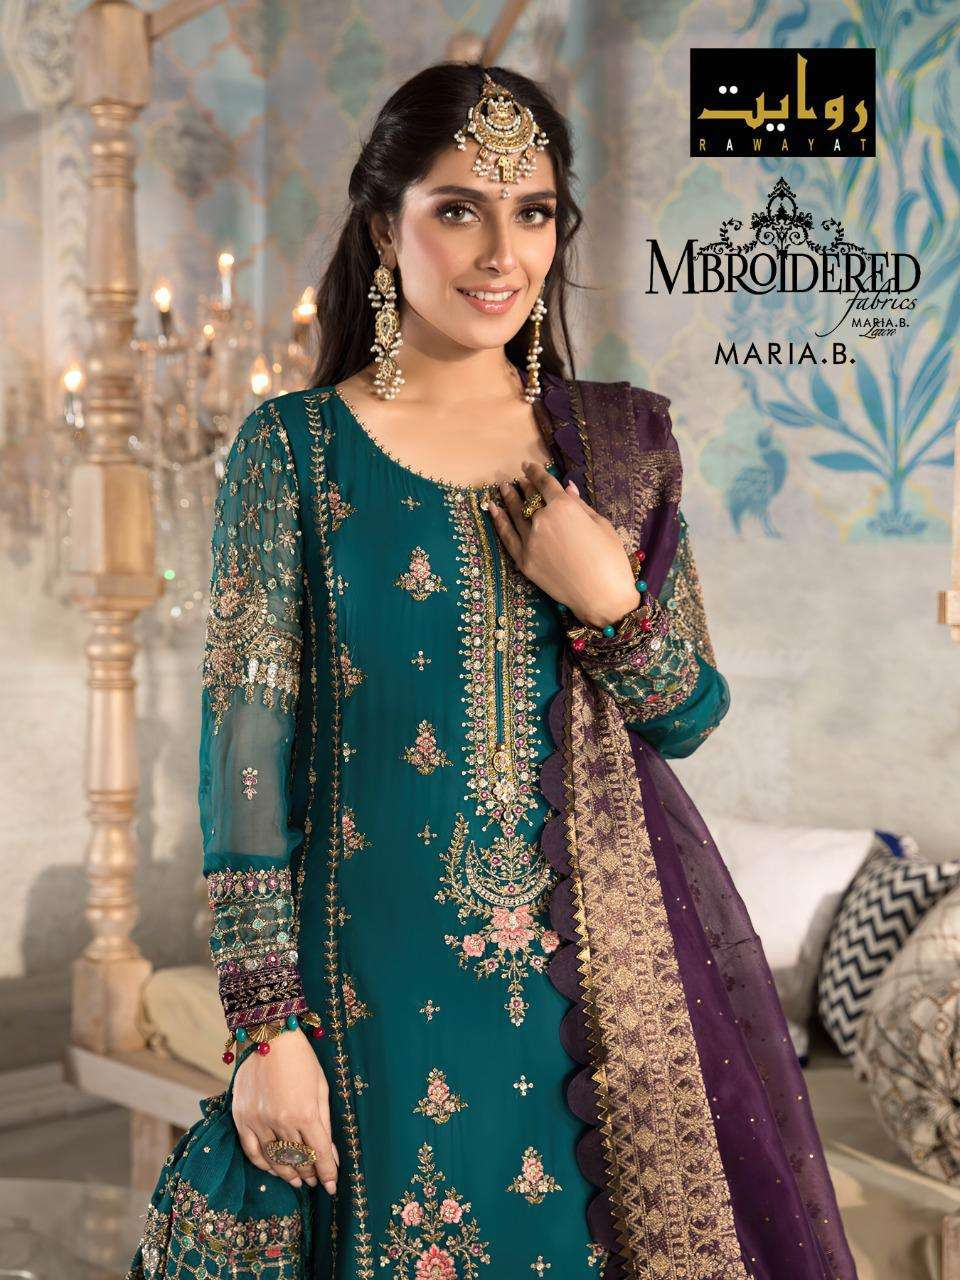 Rawayat Mbroidered Collection 2021 Georgette Pakistani Suits